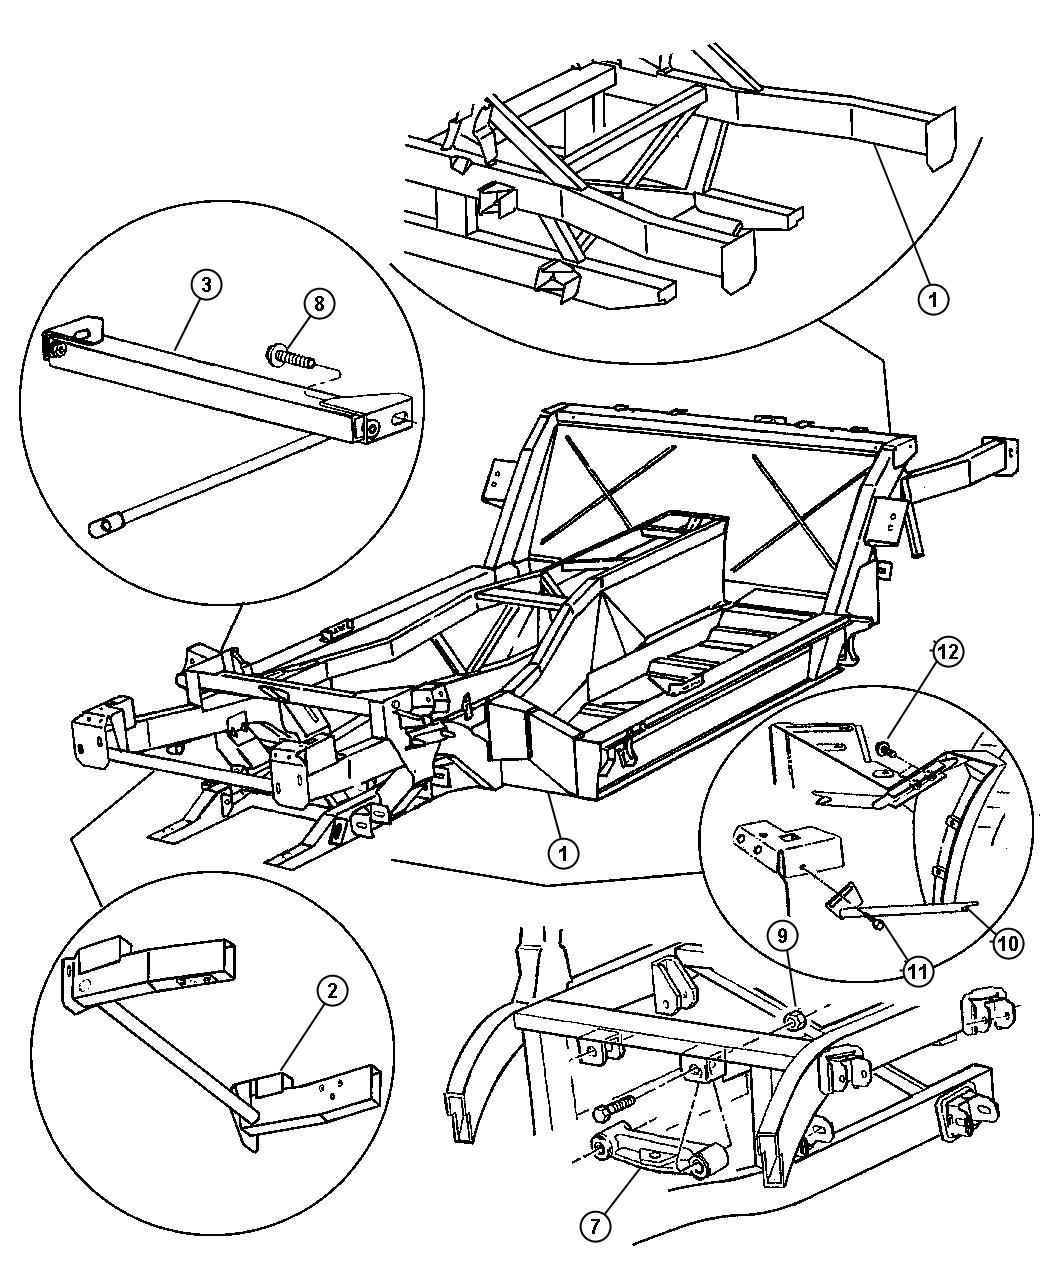 Muscle Car Coloring Book Buy Print A Muscle Cars .html